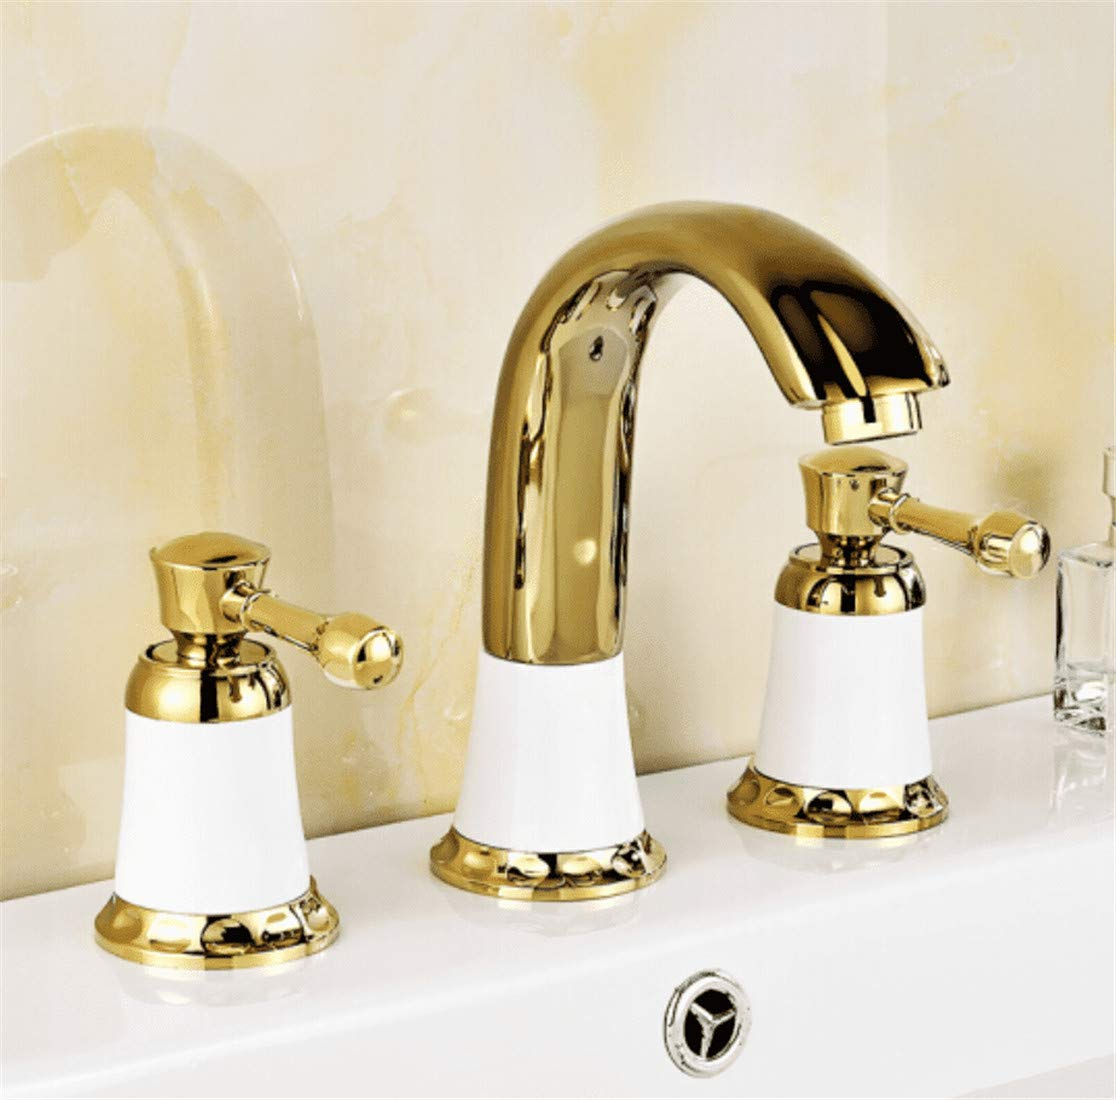 A Mucert Tap,All Copper,Hot and Cold Mixing Water,Three Hole European gold Faucet,Bathroom Basin Faucet,A